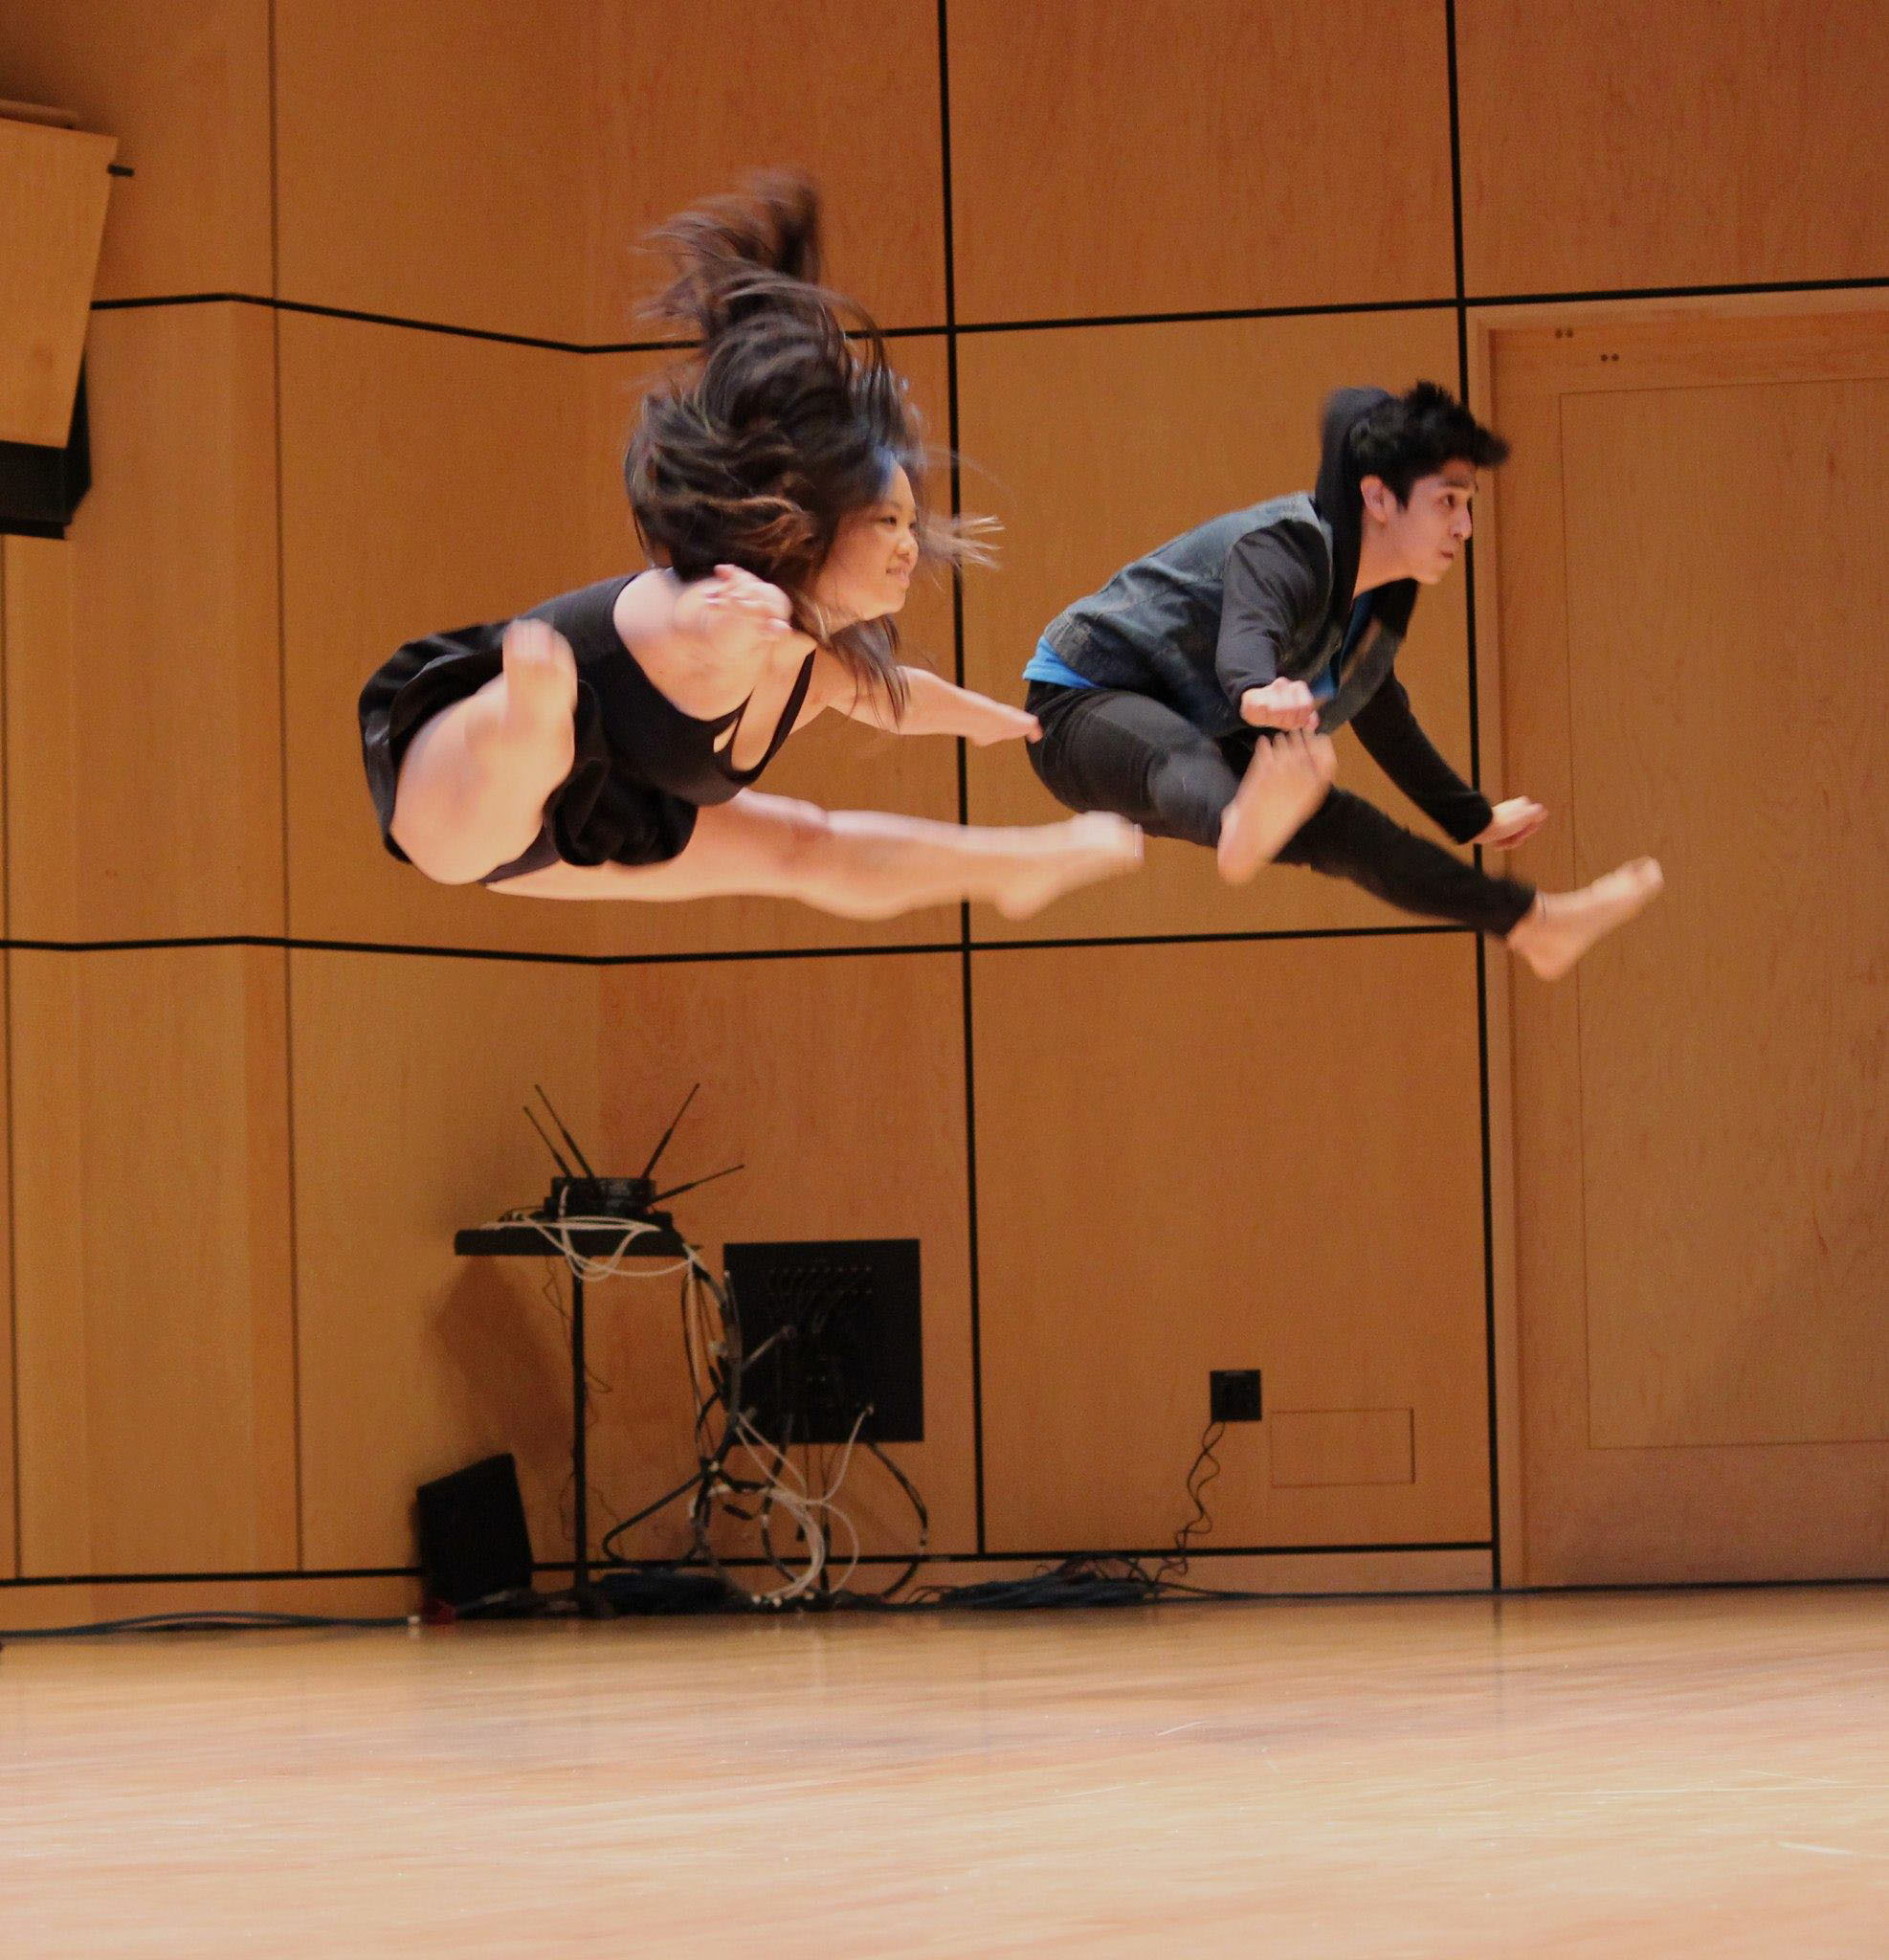 Students jump into the air doing a dance routine